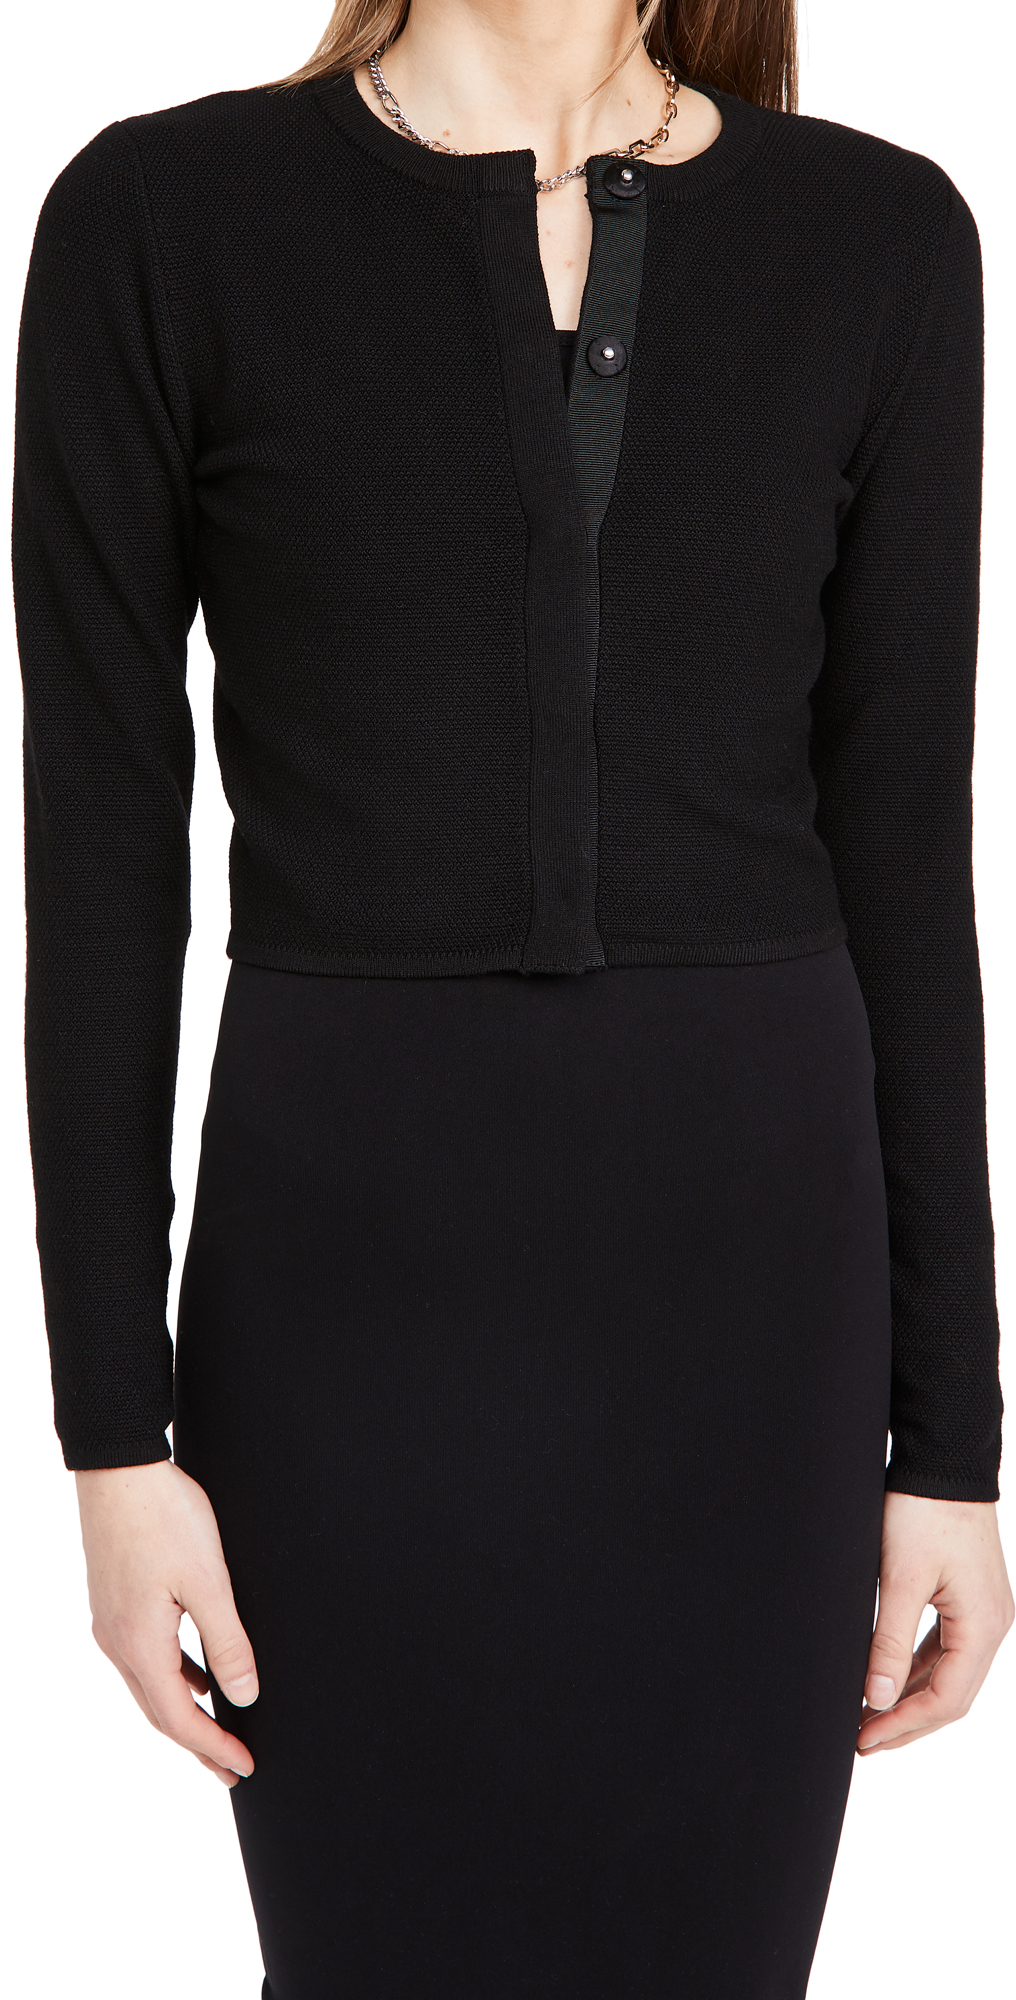 Victor Glemaud Cropped Cardigan